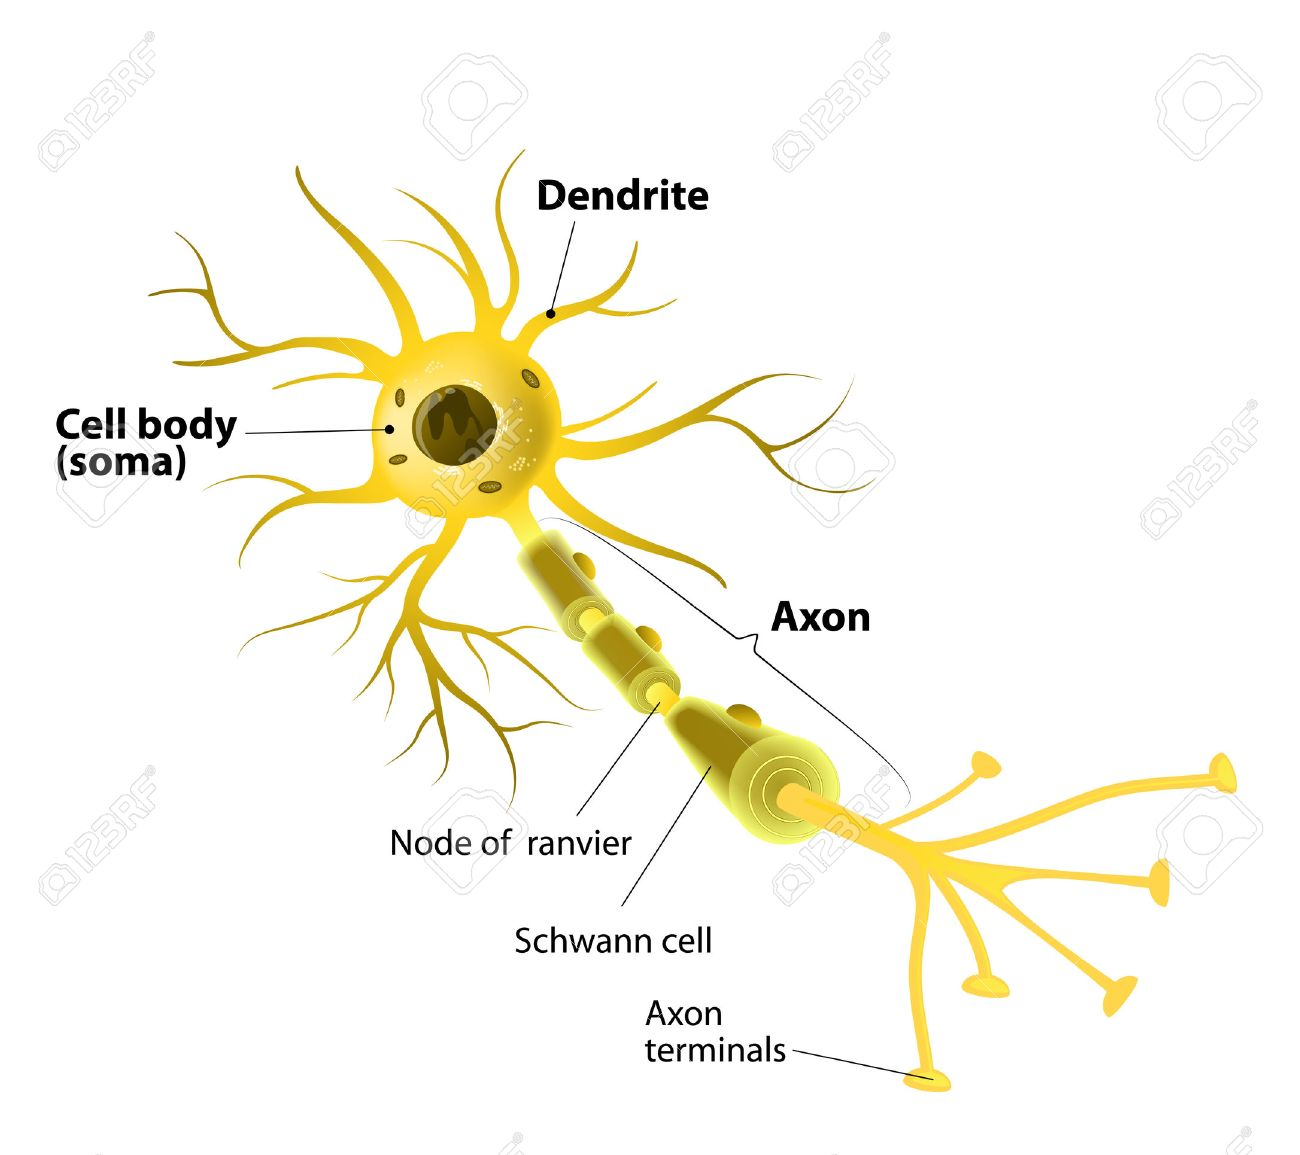 Neuron and synapse labeled diagram royalty free cliparts vectors neuron and synapse labeled diagram stock vector 37371607 ccuart Choice Image